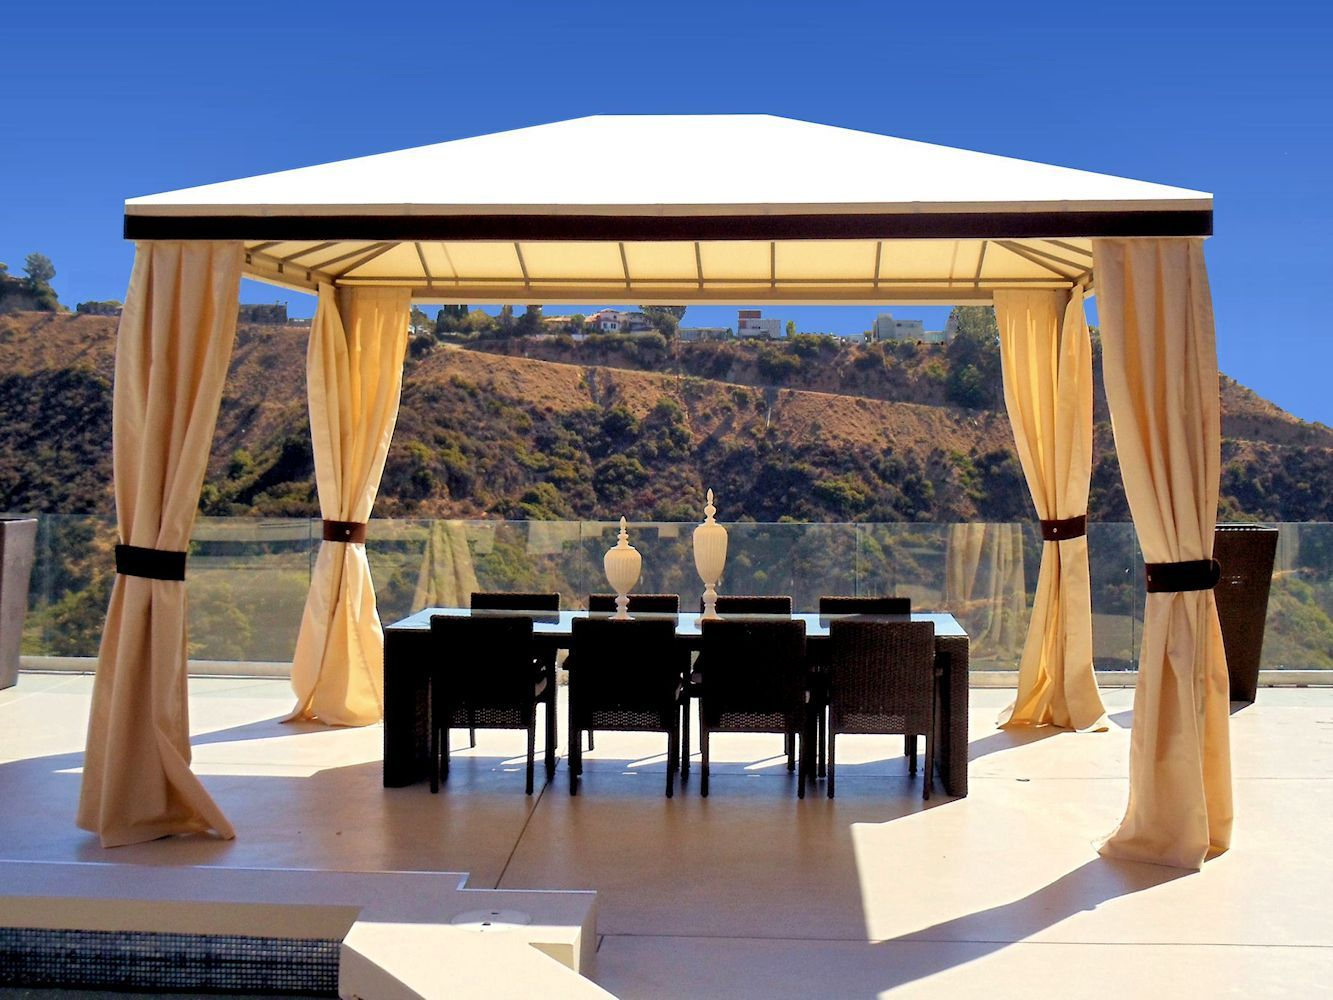 Custom Pool Cabanas By Superior Awning Let The Sun Shine Outdoor Shade Residential Awnings Covered Patio